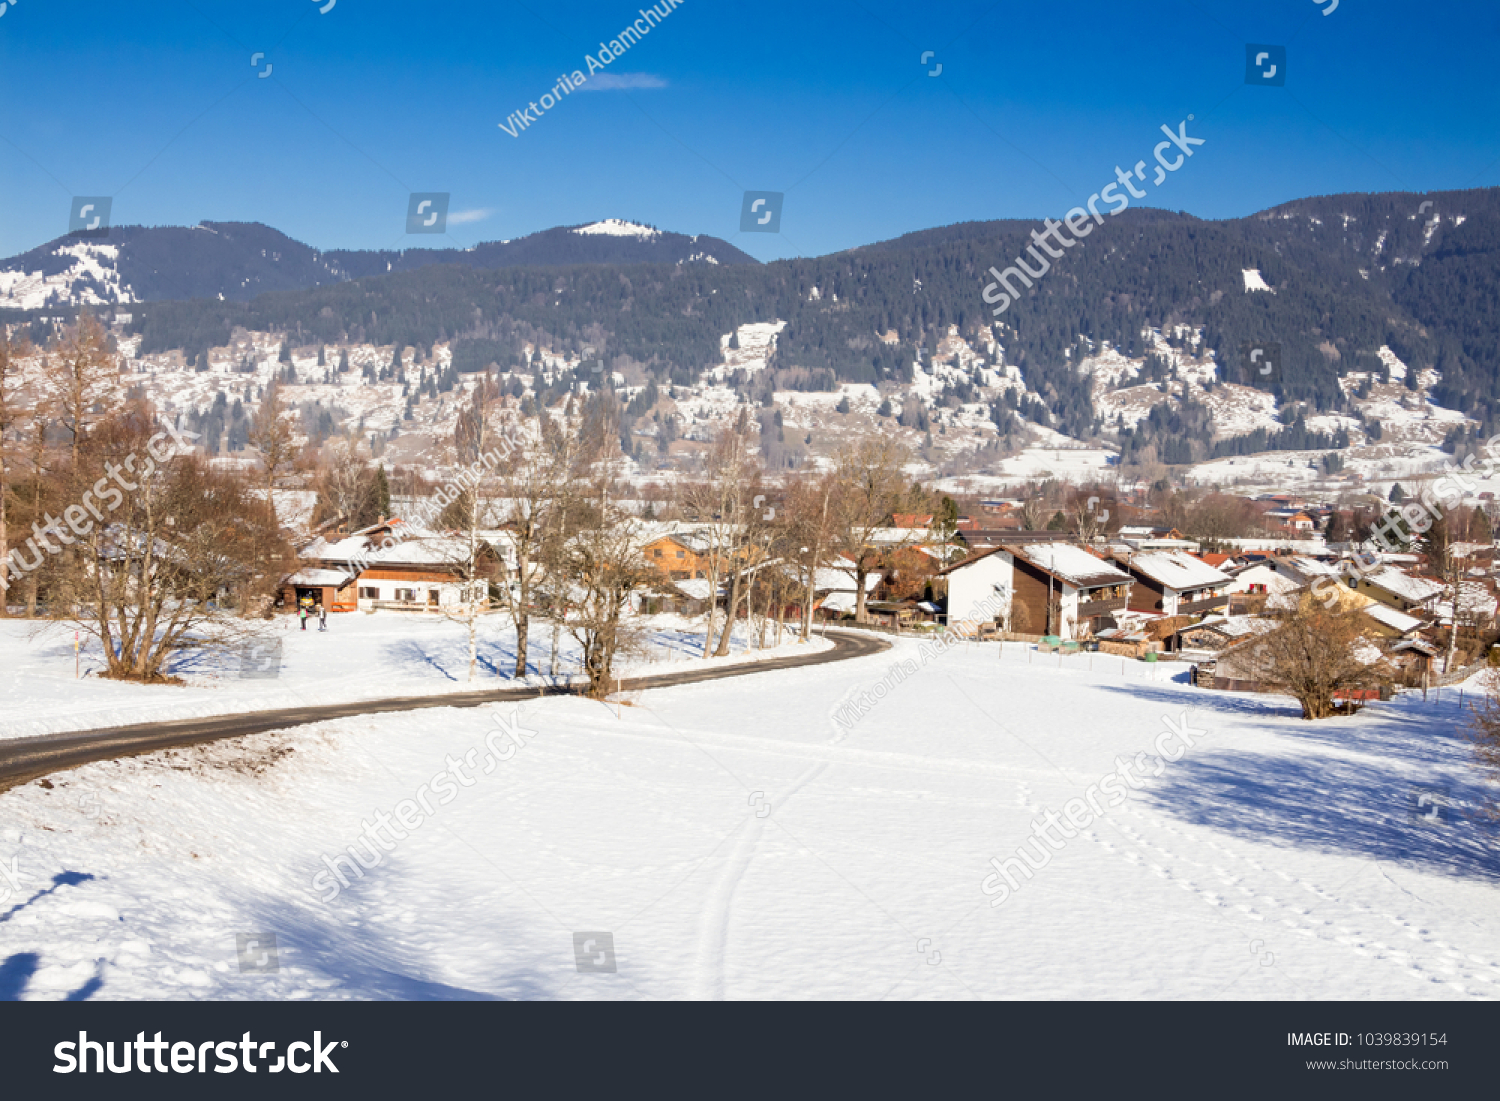 oberammergau germany january 13 2018 landscape snowing stock photo